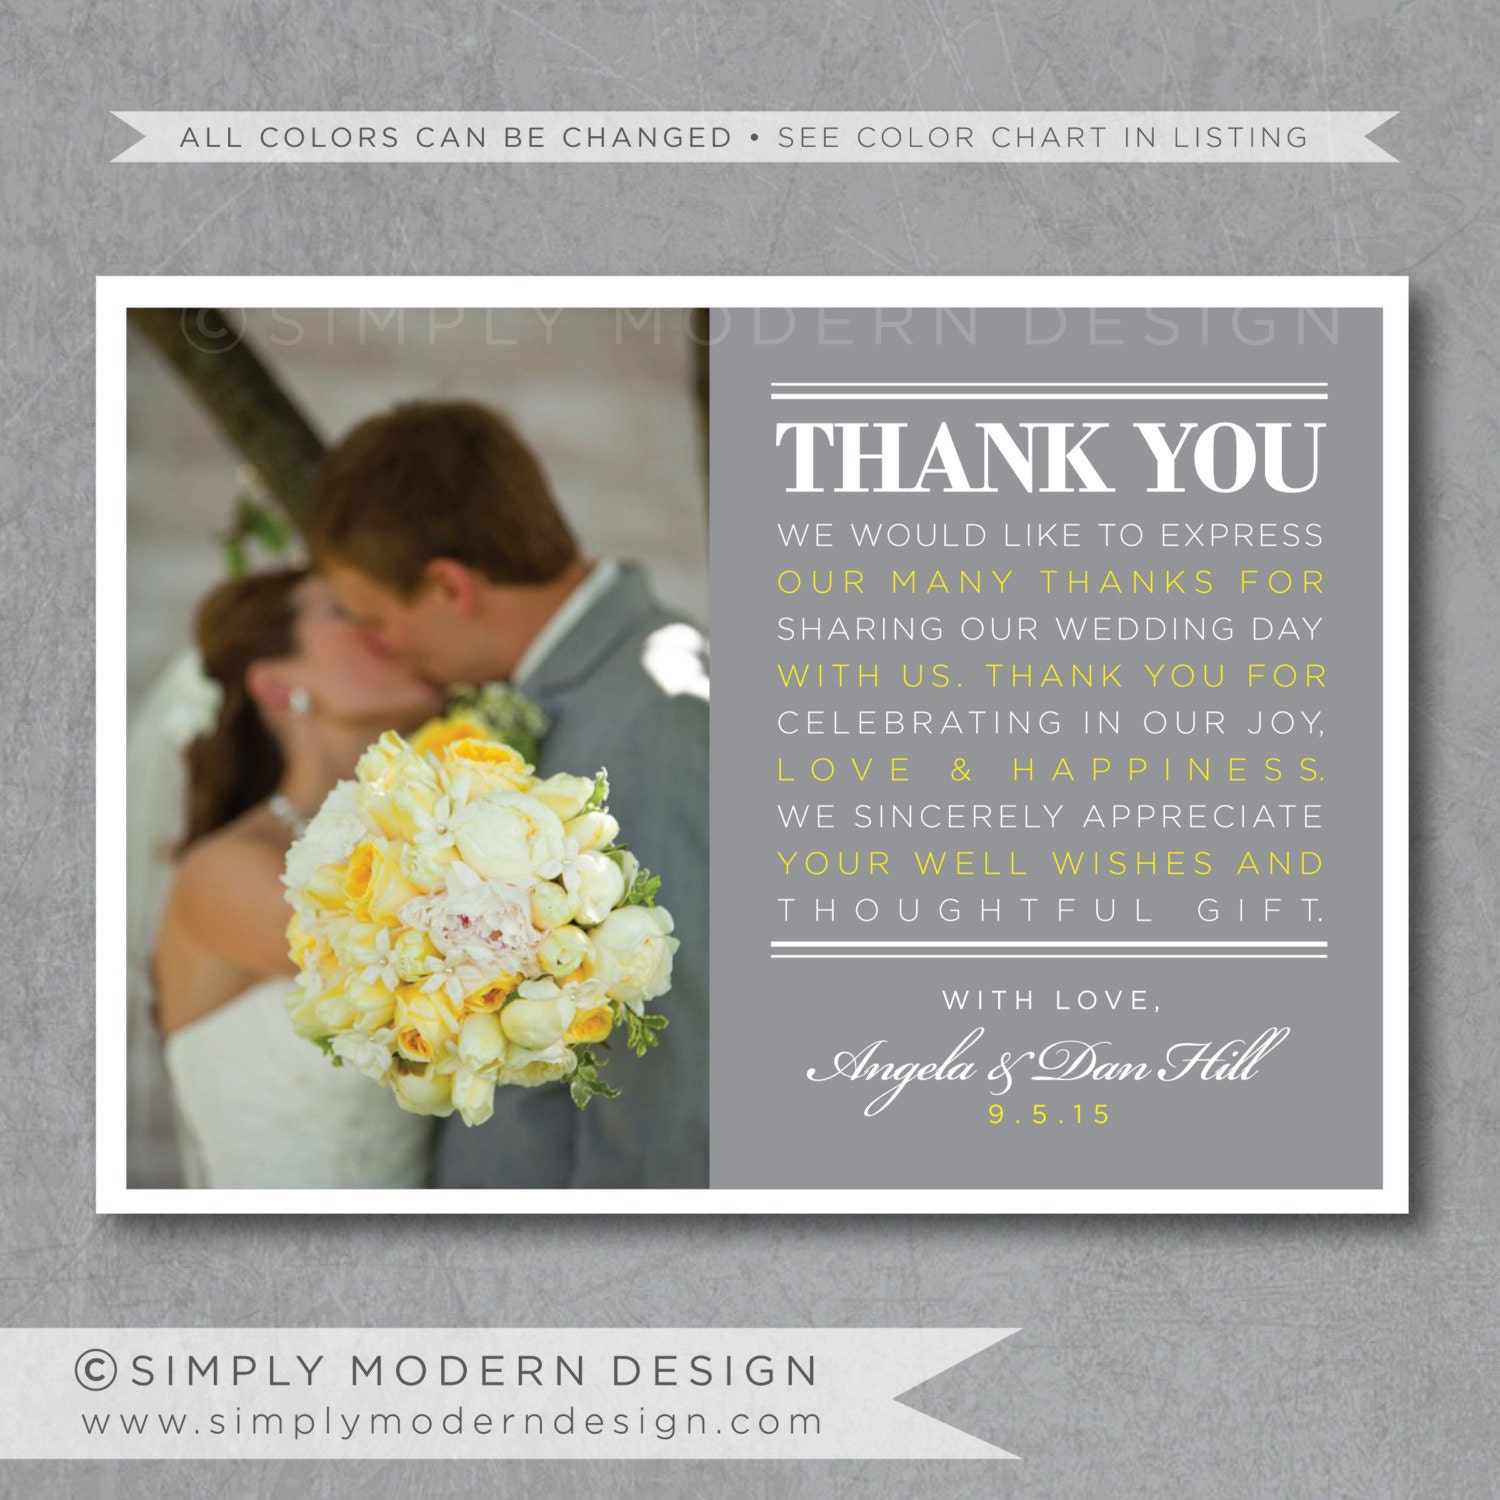 Wedding thank you cards yaseen for for Thank you cards for wedding